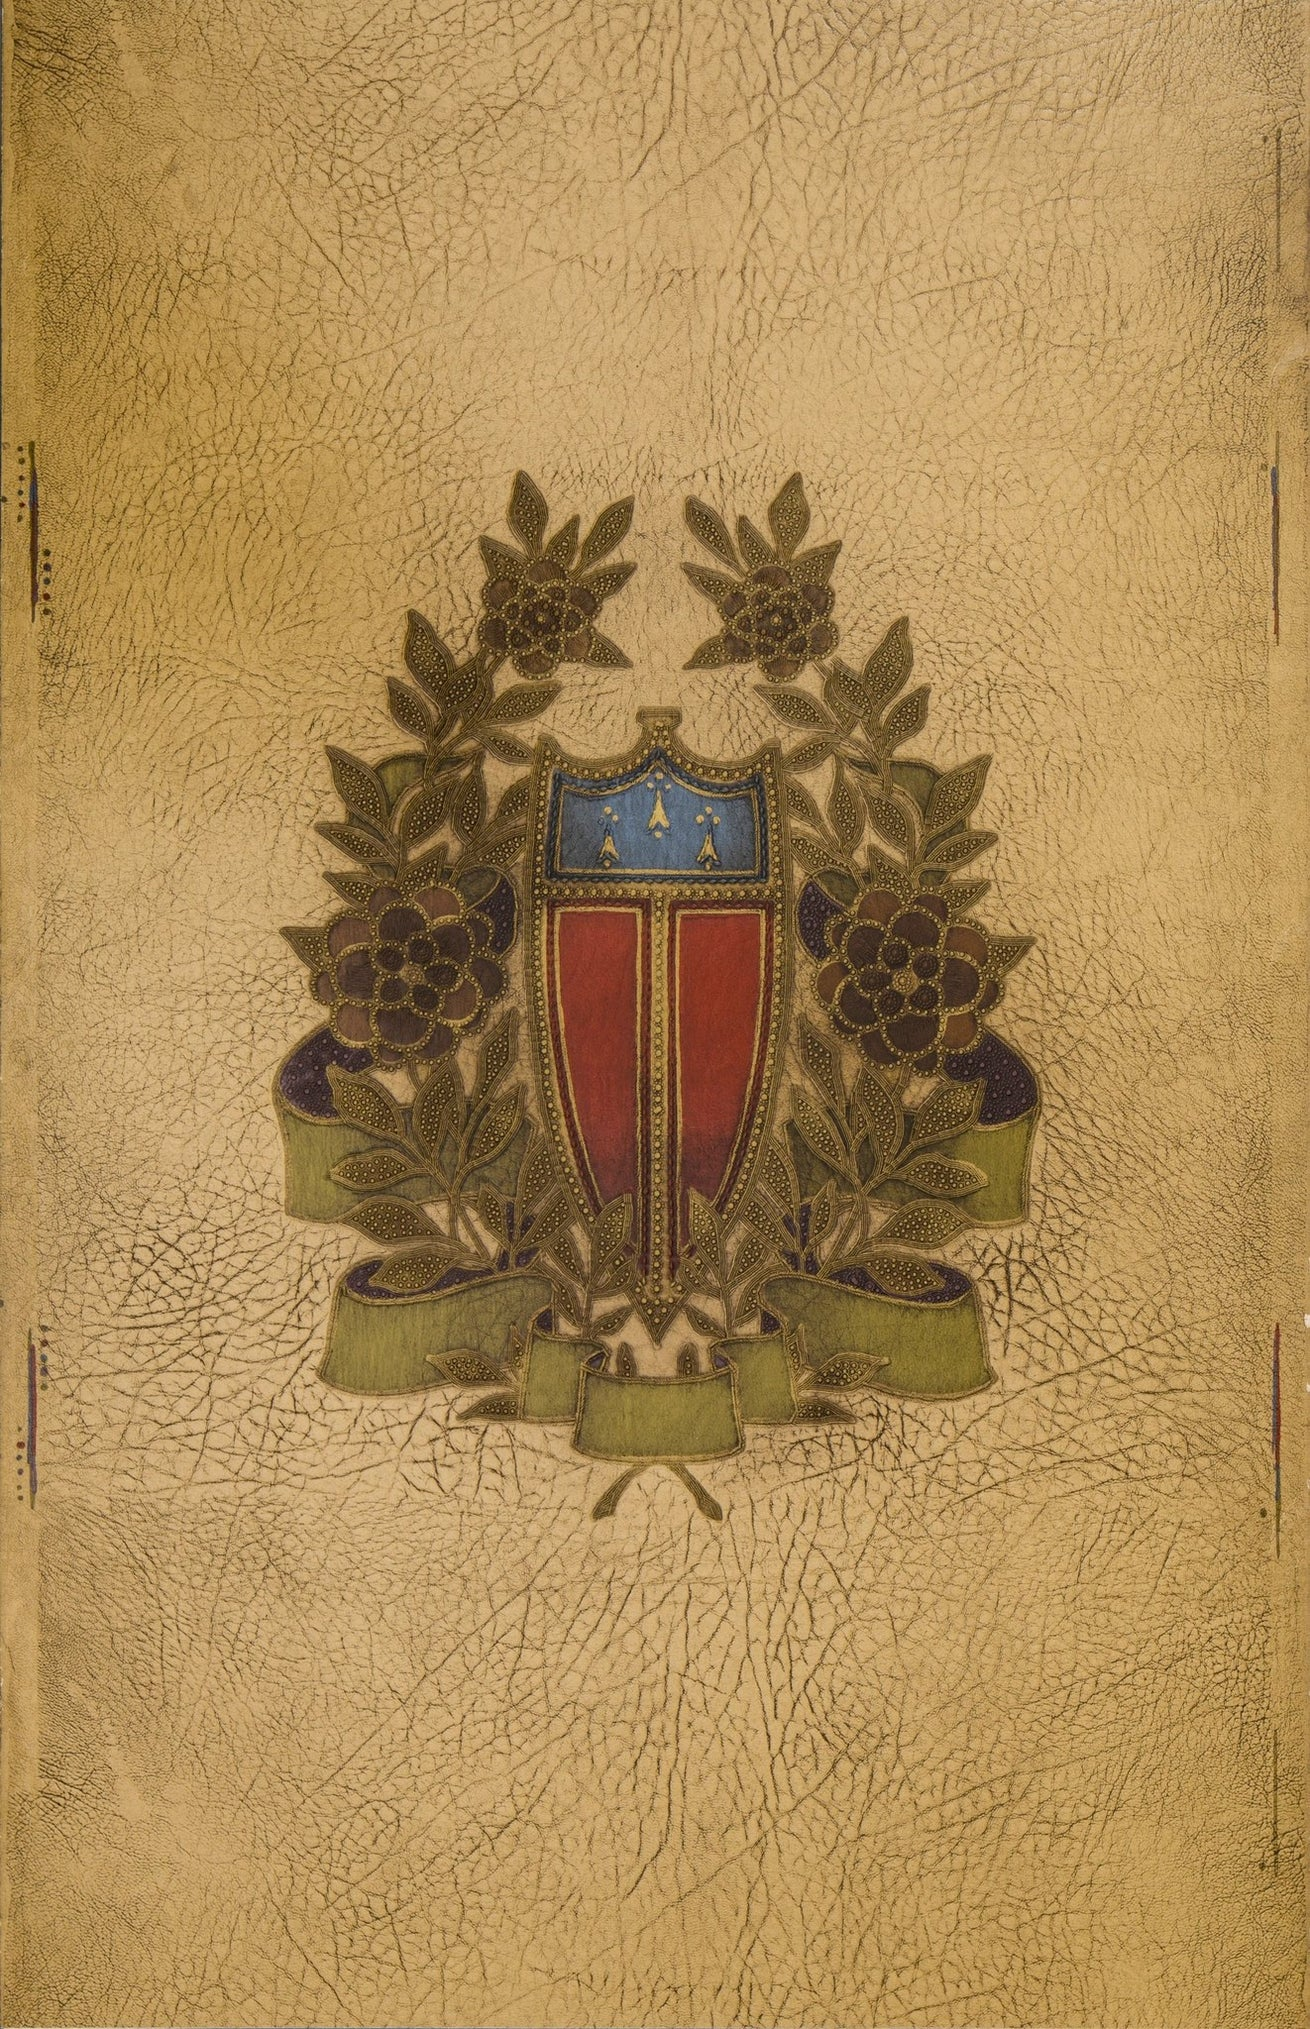 Embossed Shield and Wreath on Leather - Antique Wallpaper Remnant